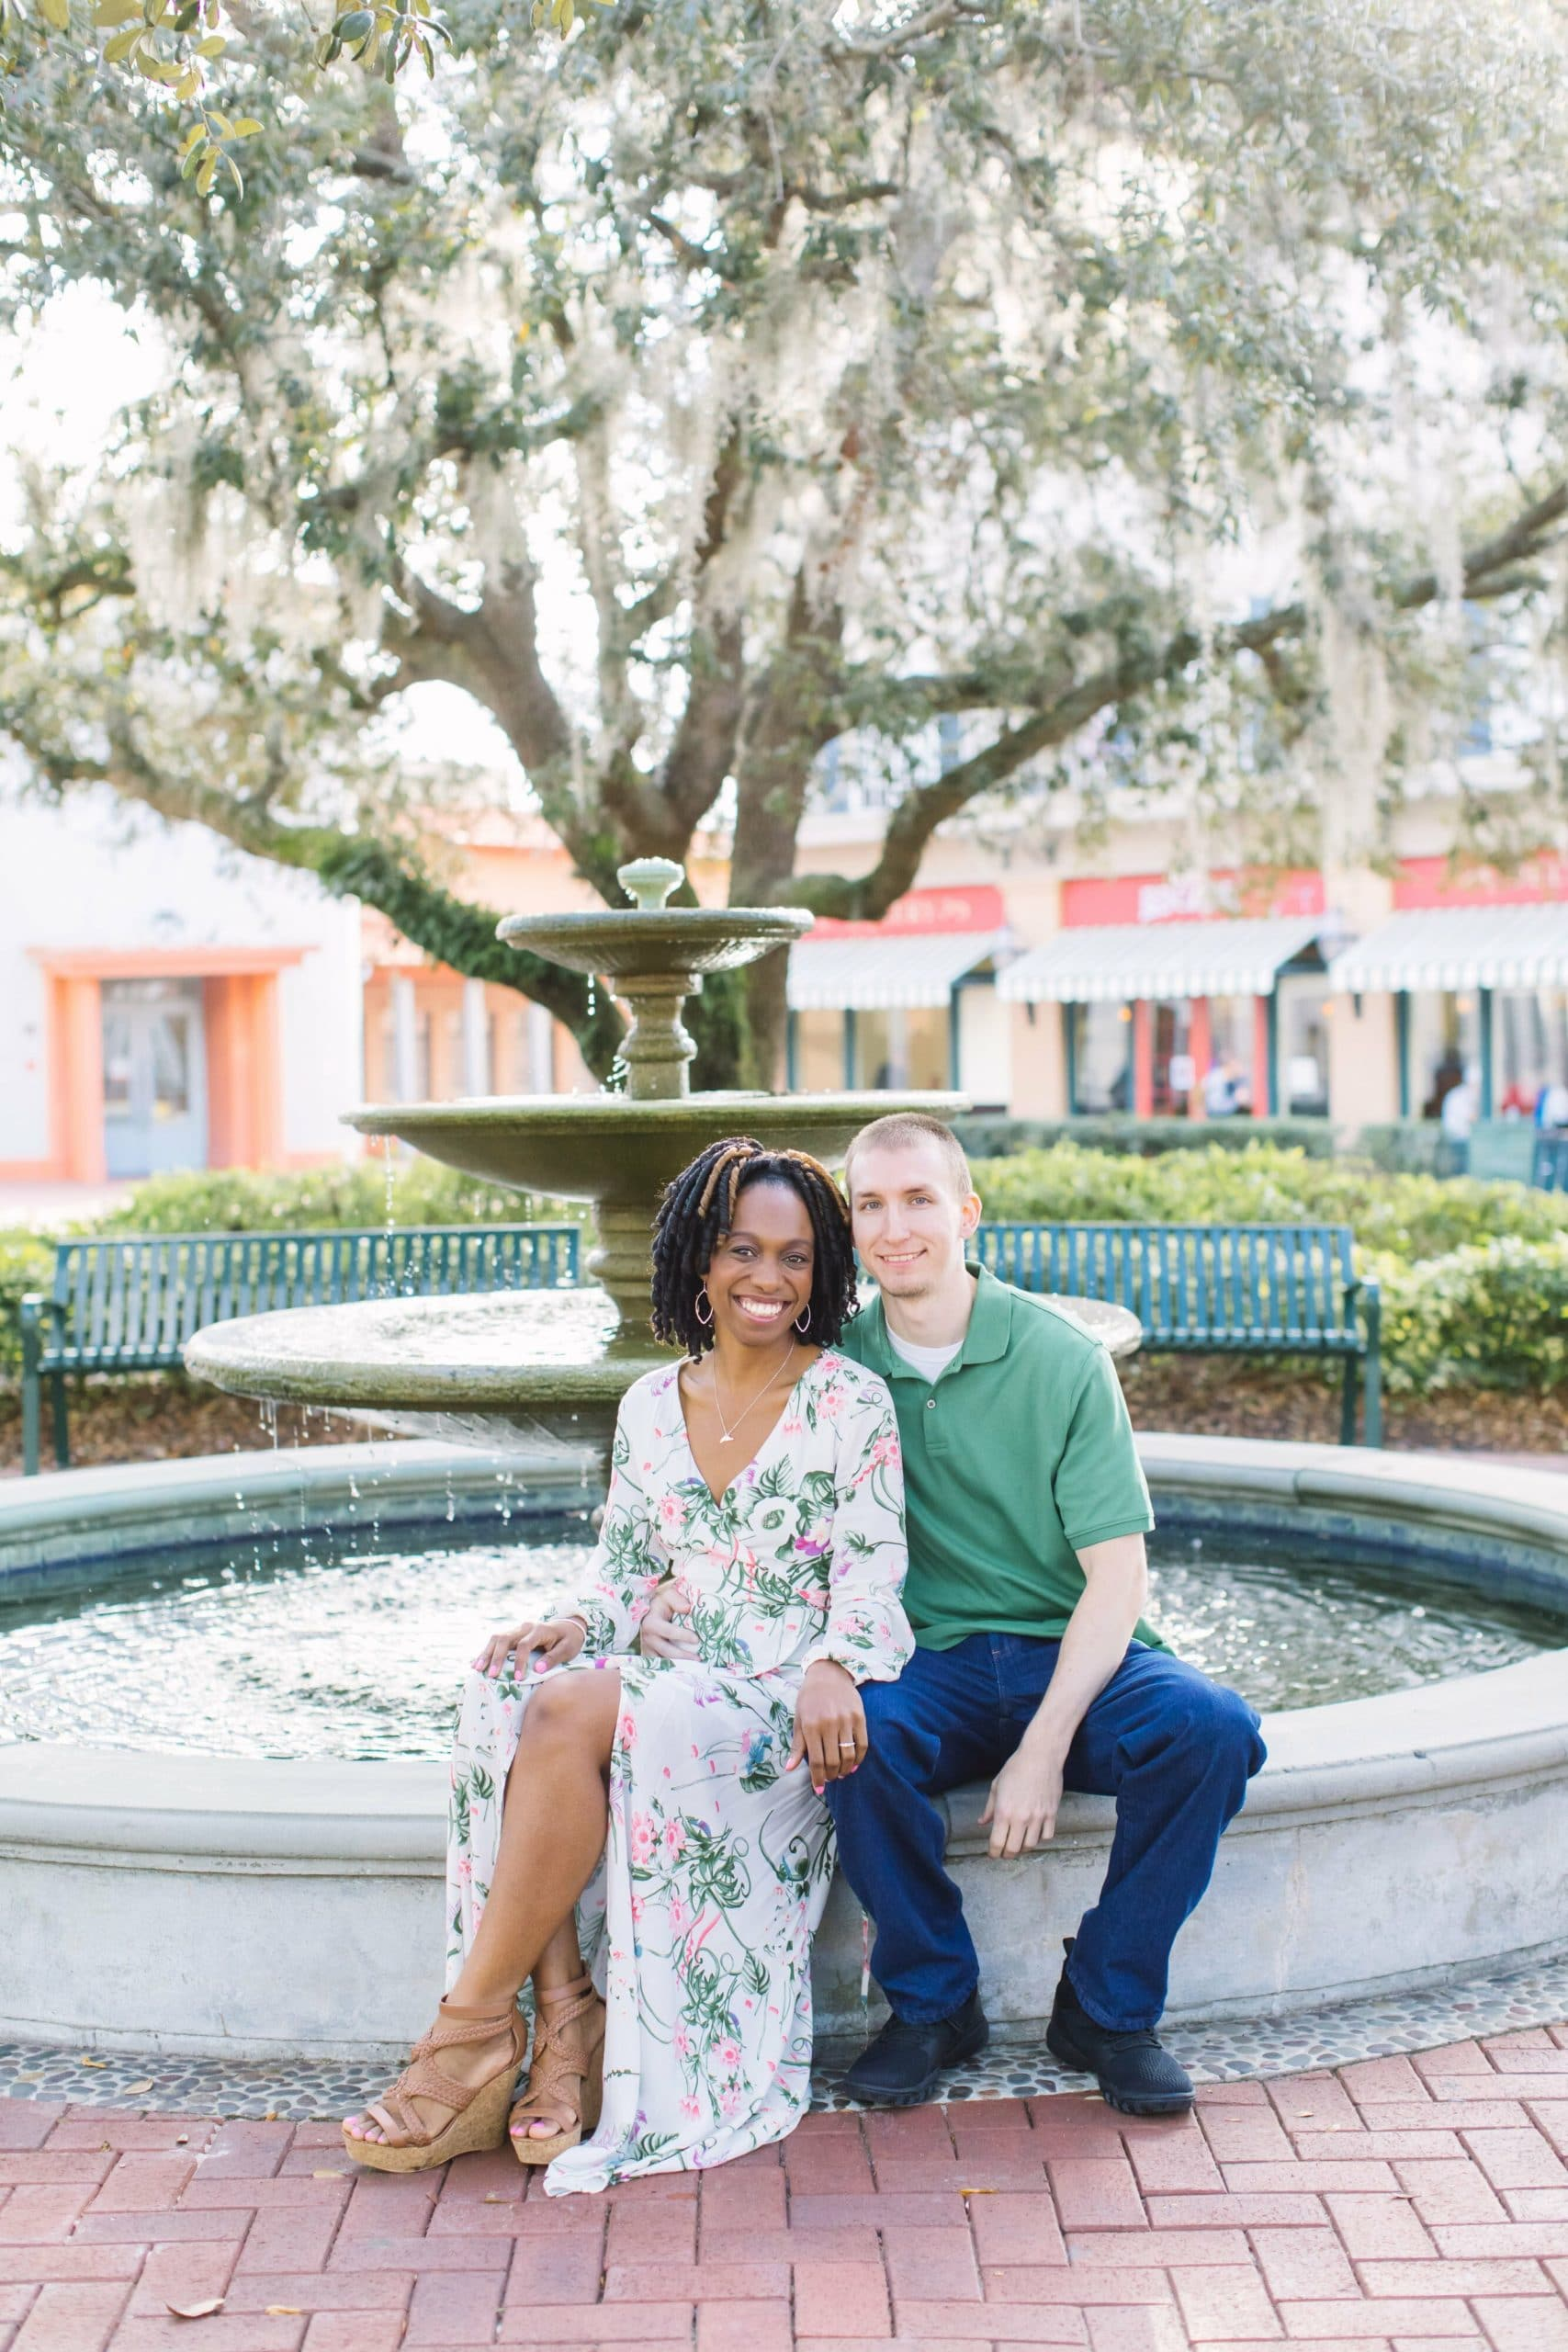 African American Female Bride with Caucasian Male Groom in Green Shirt sitting in front of park fountain